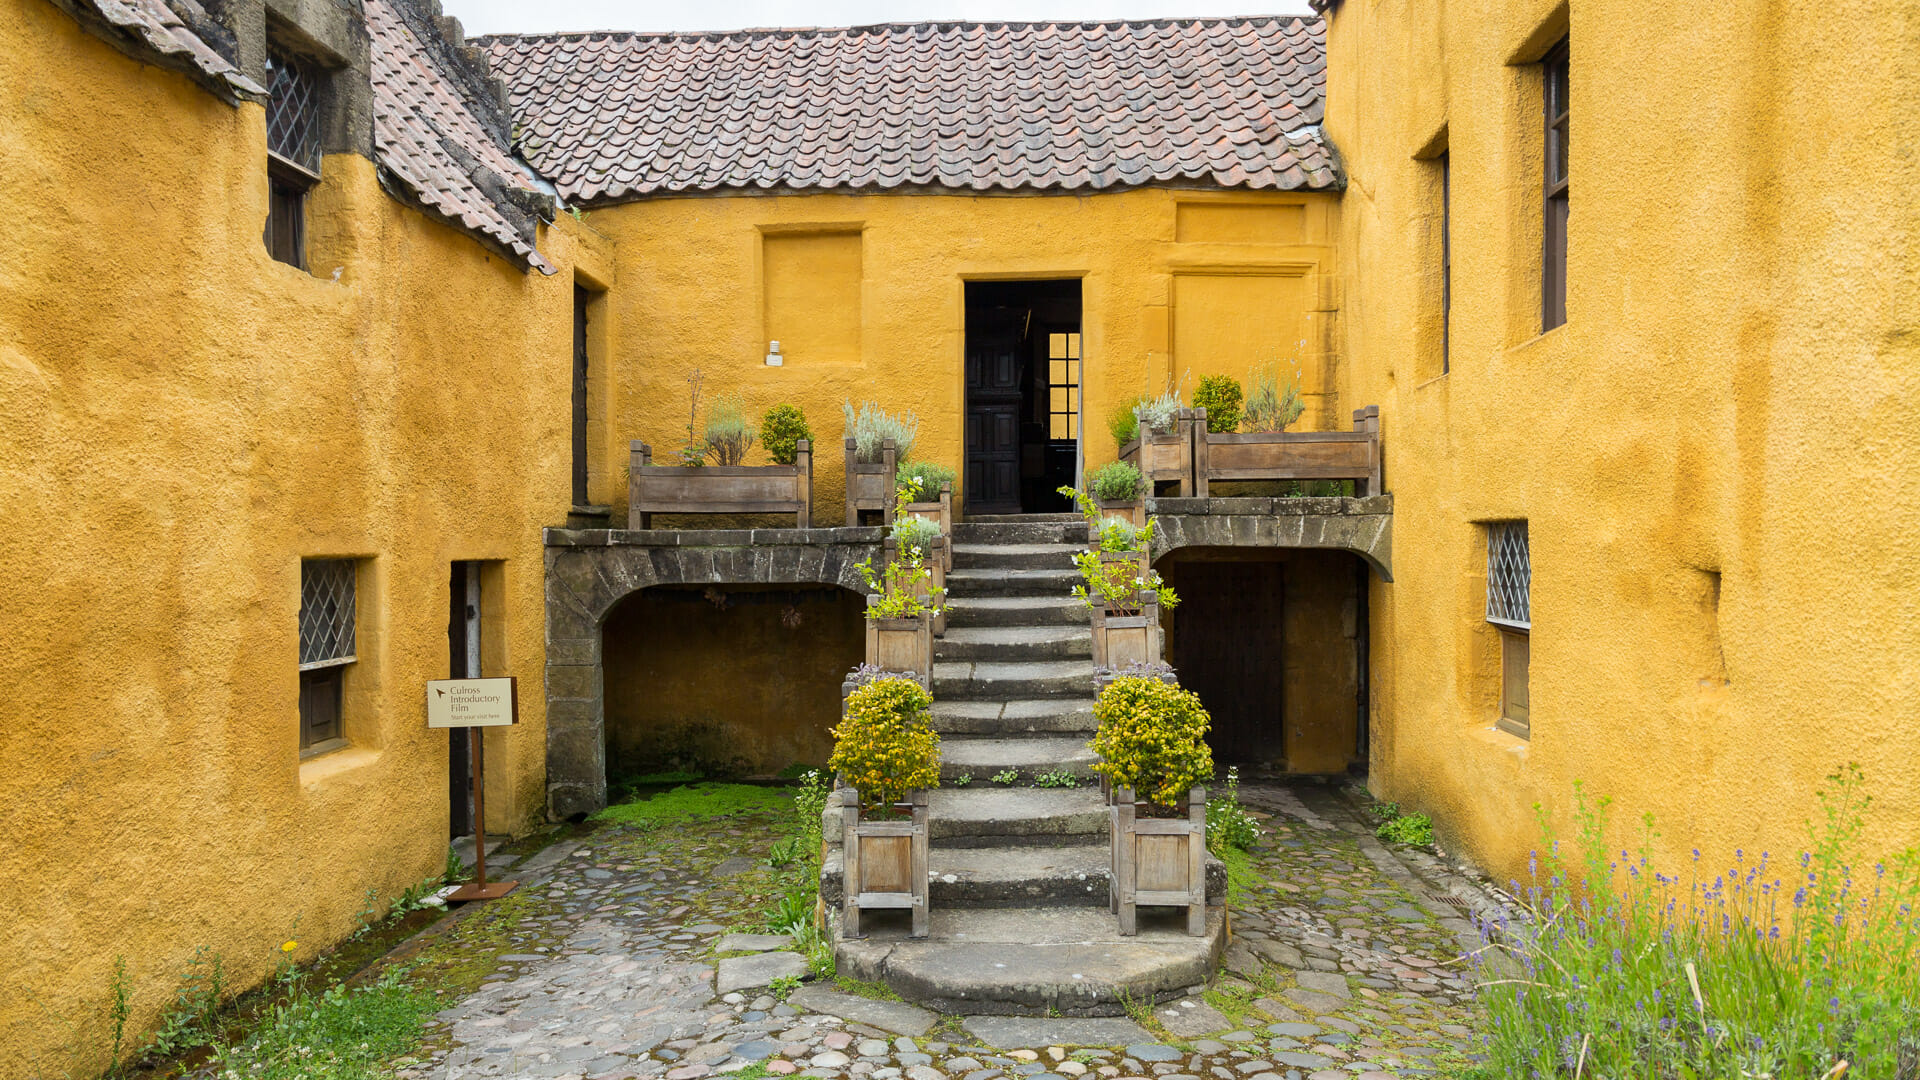 Treppenaufgang des Culross Palace